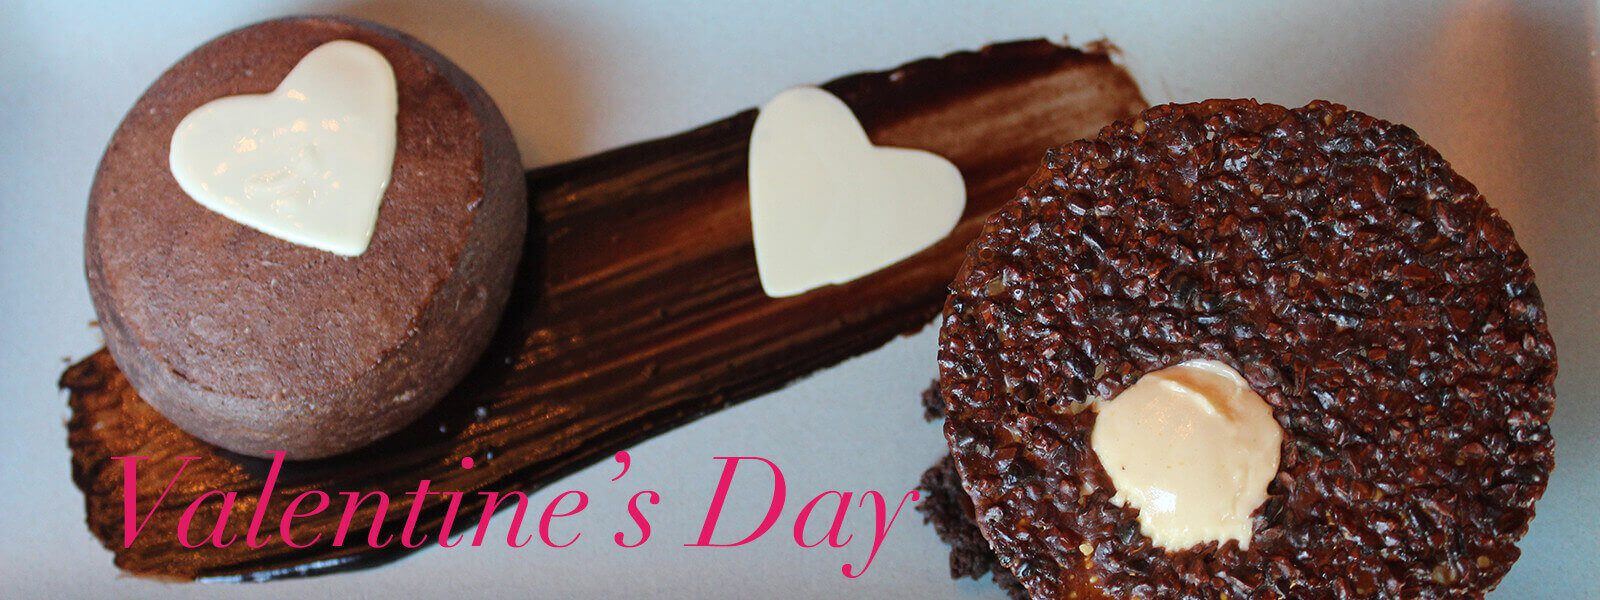 """Plated chocolate dessert with white chocolate hearts and text """"Valentine's Day."""""""